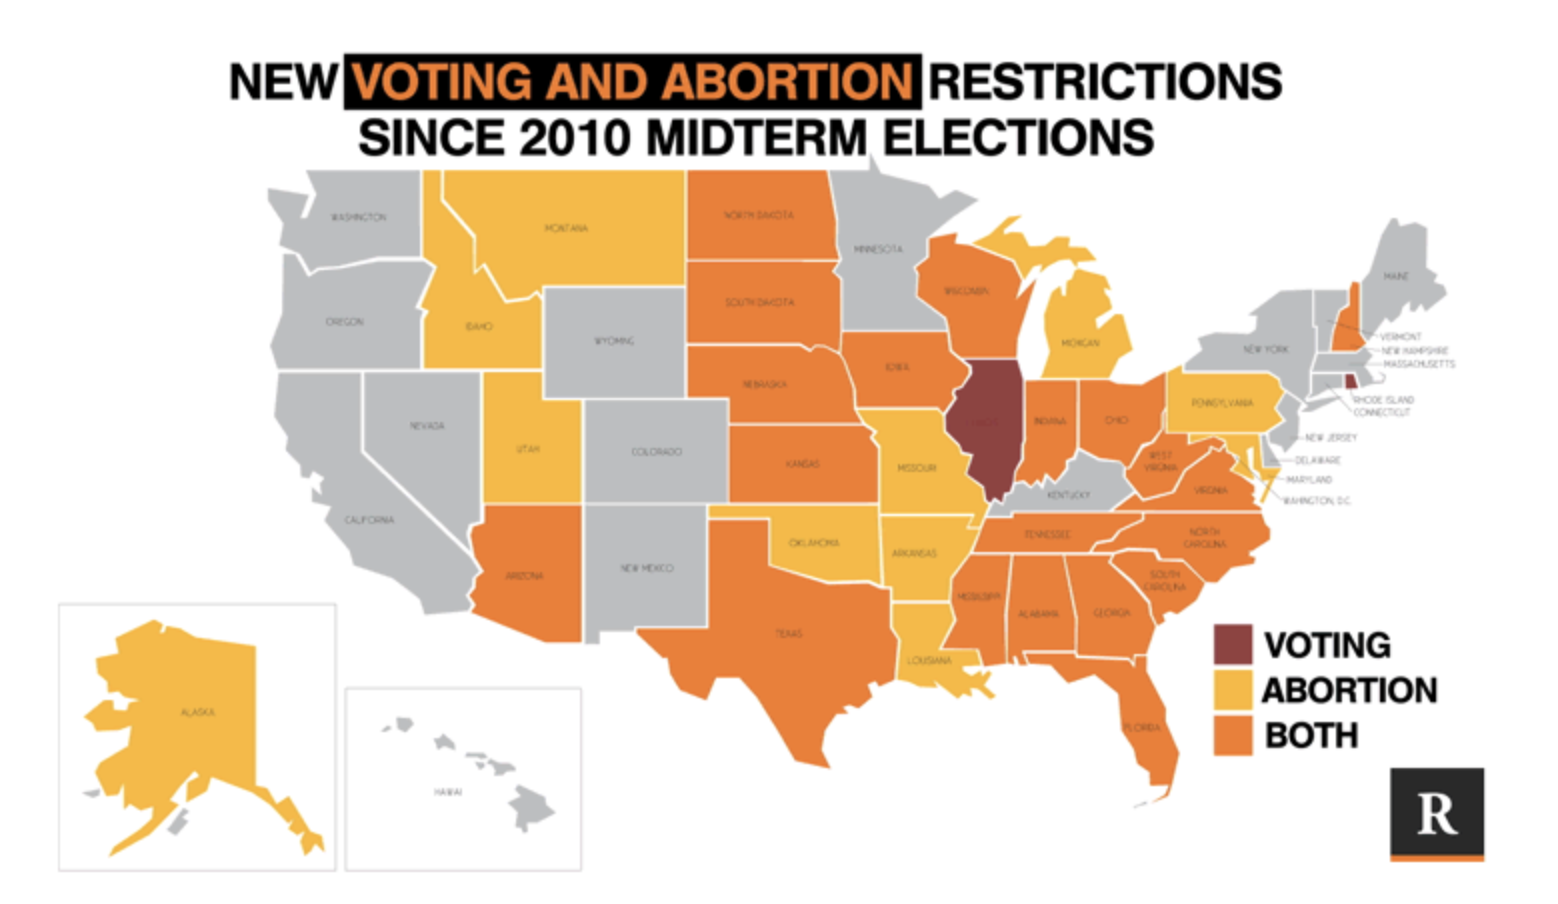 Abortion and voting restrictions